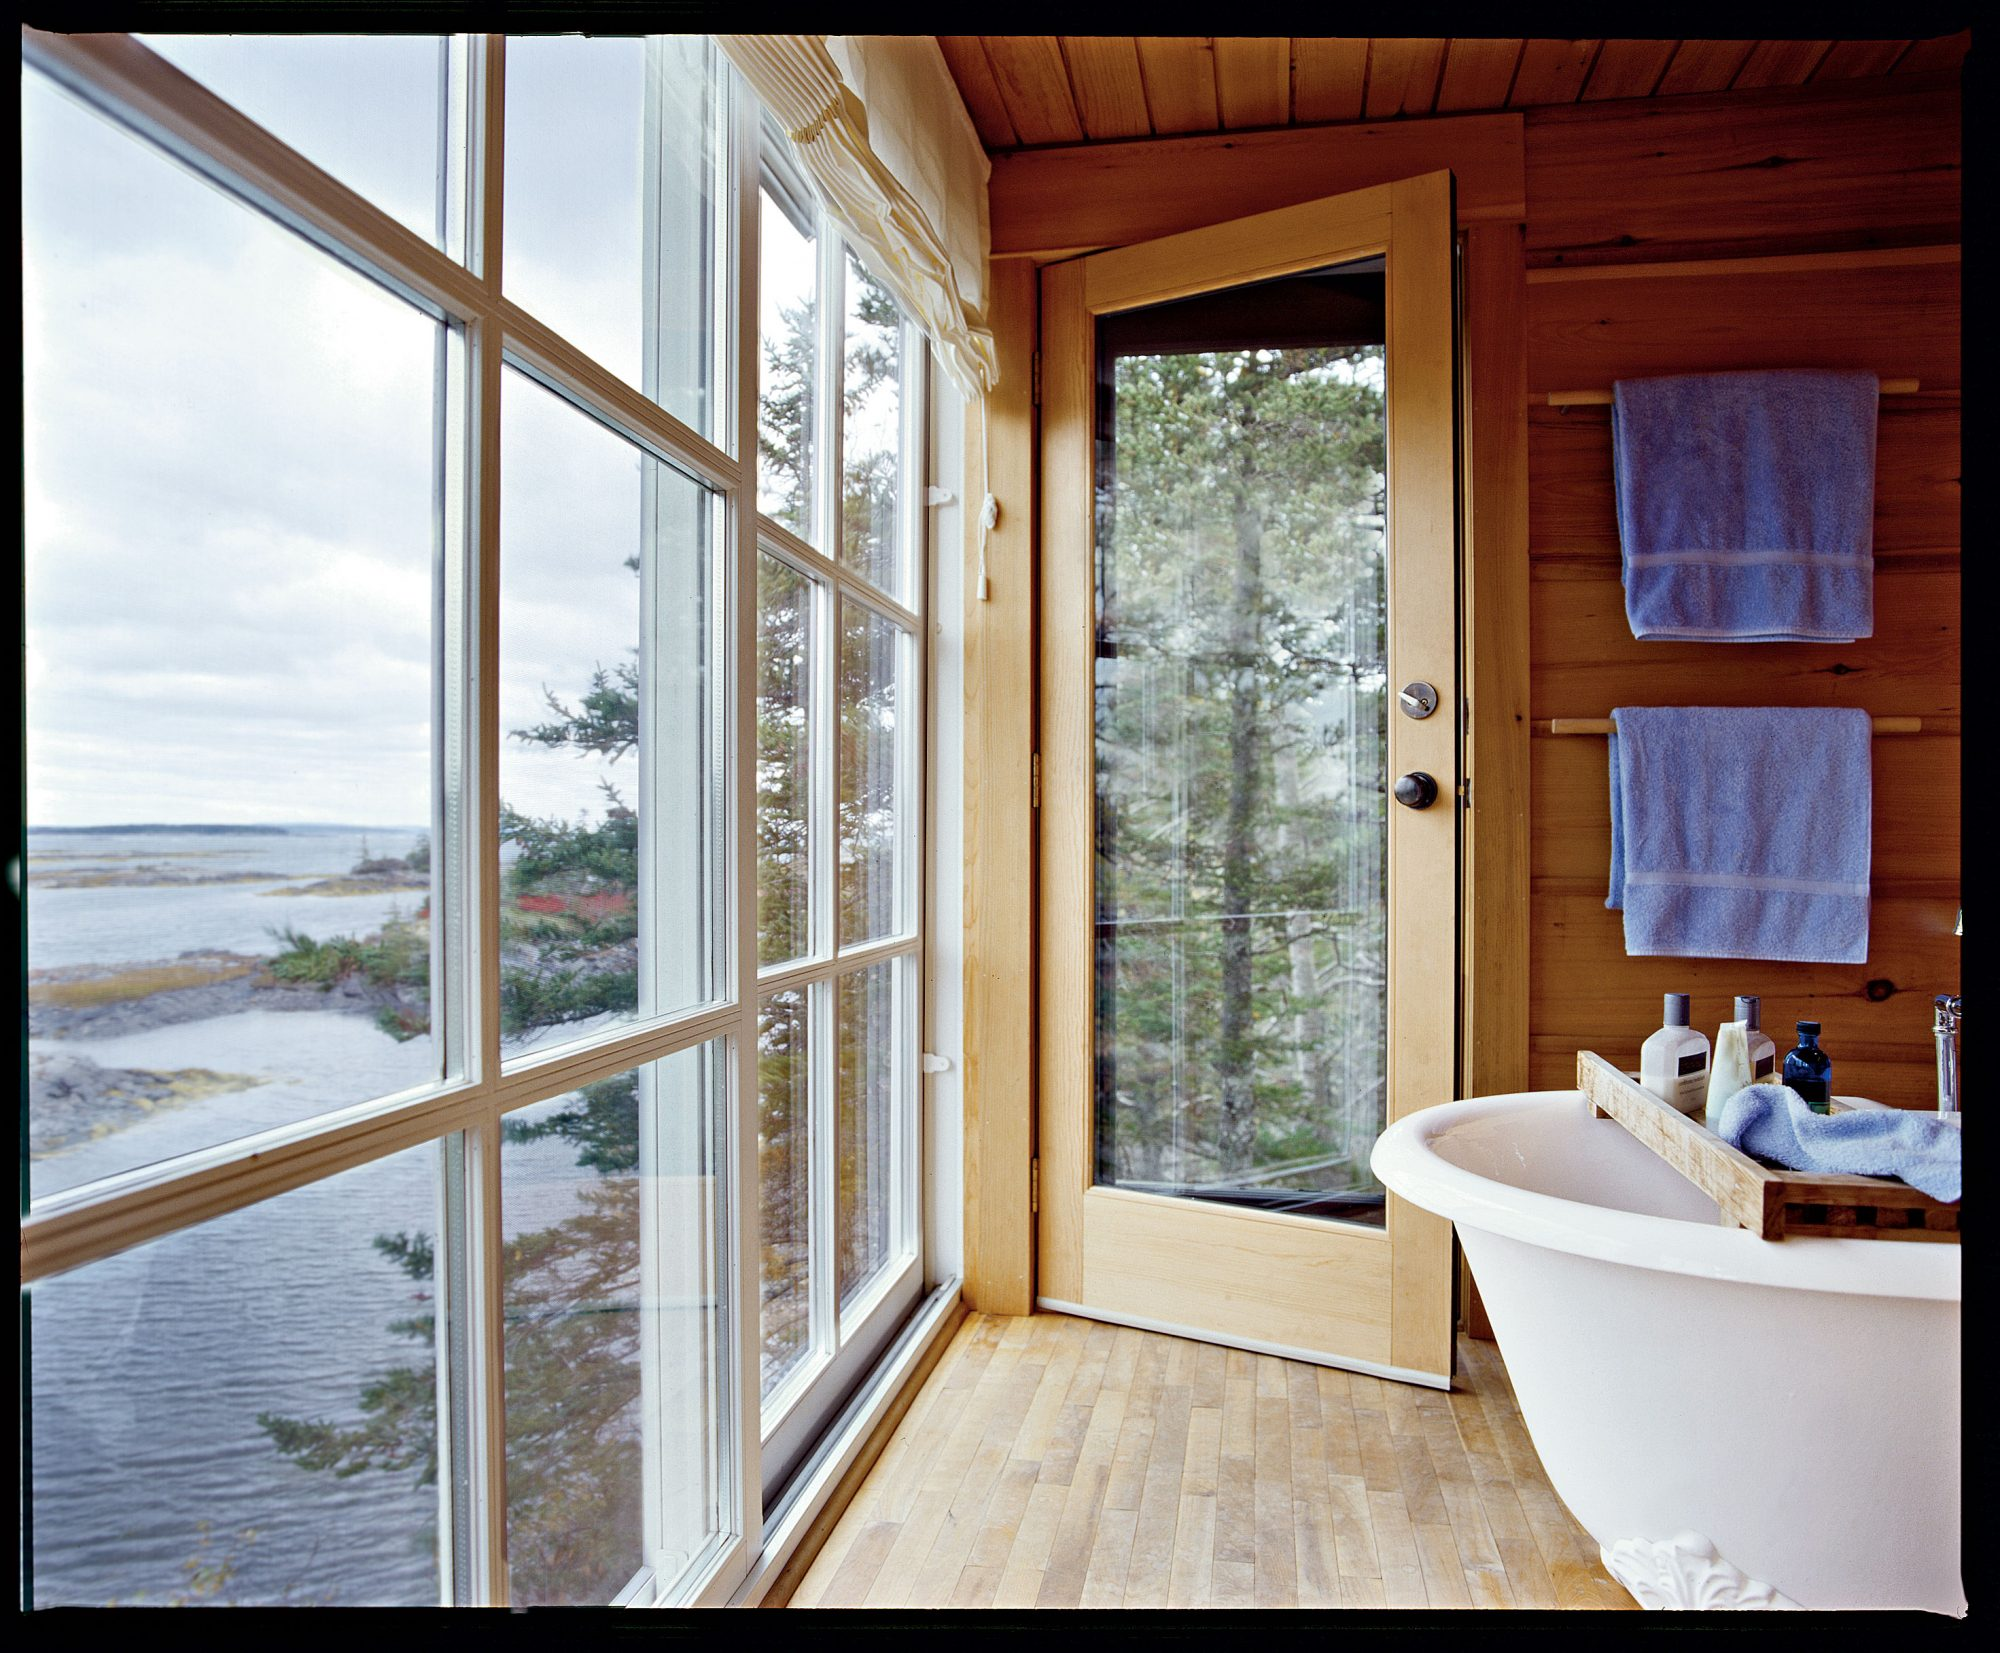 floor to ceiling windows, on one wall, let in plenty of light to a clawfoot porcelain tub while teak wood paneling lines the walls of the bathroom